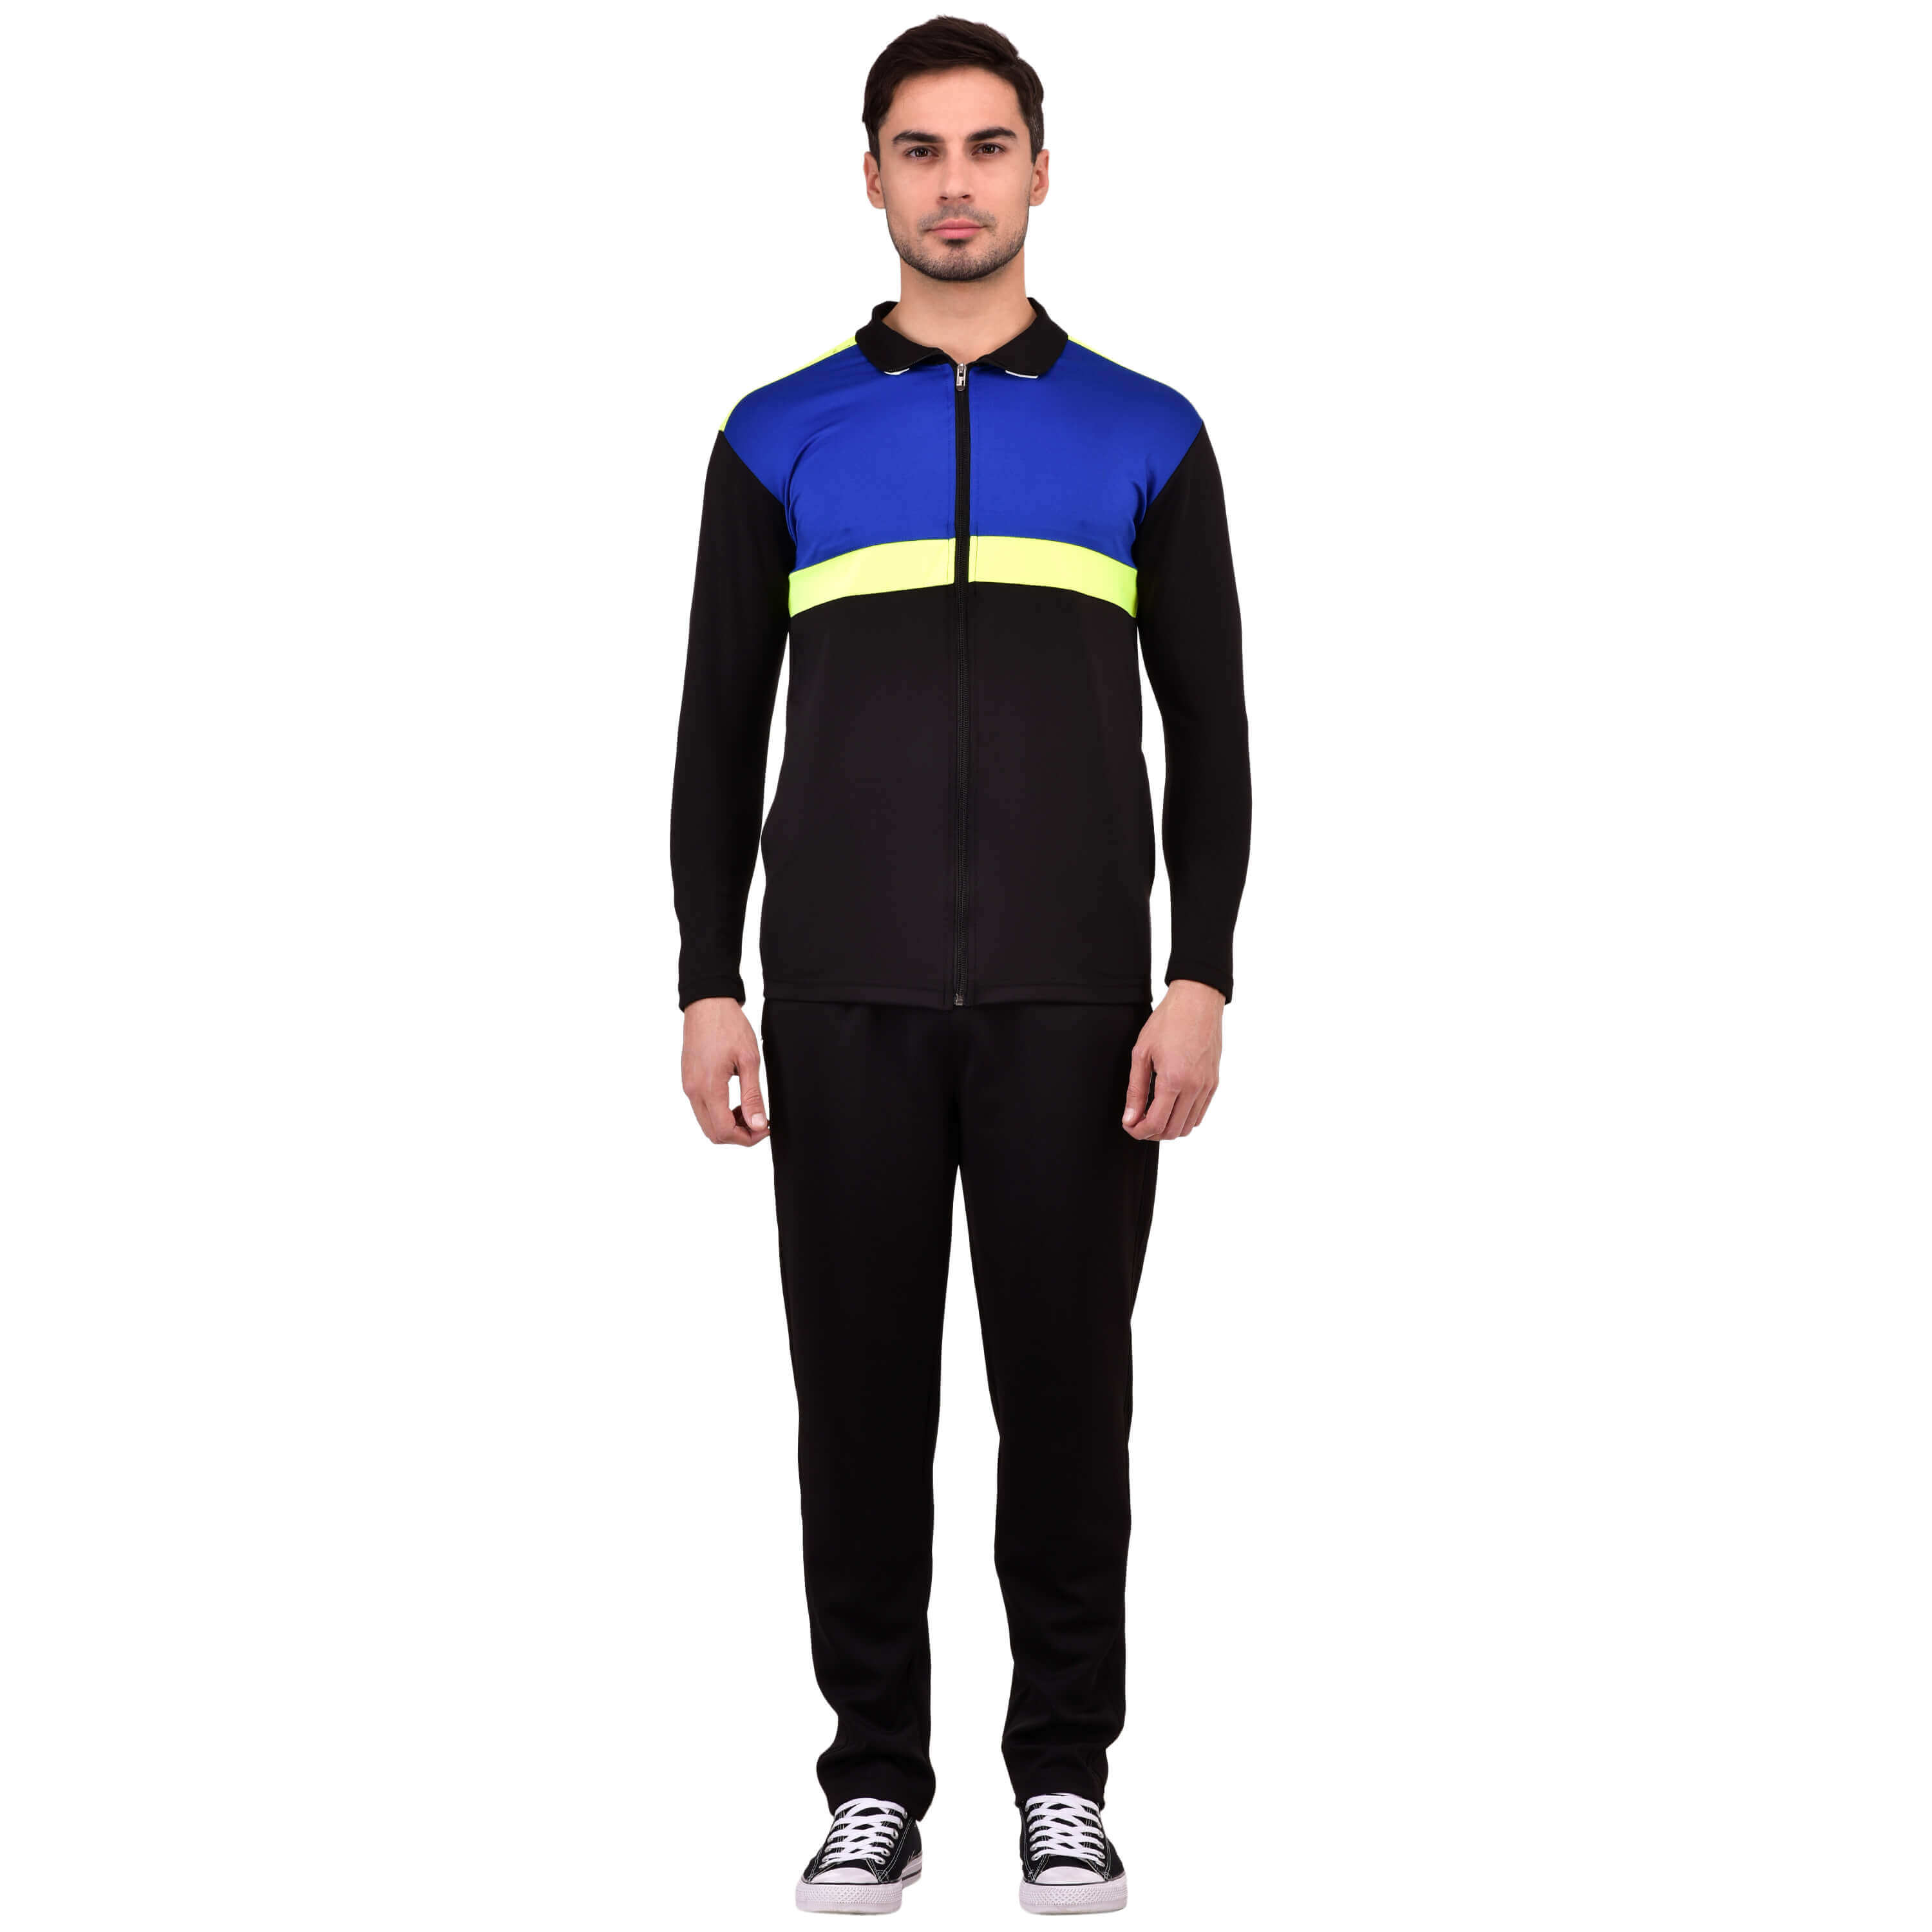 Mens Black Tracksuit Manufacturers in Raipur